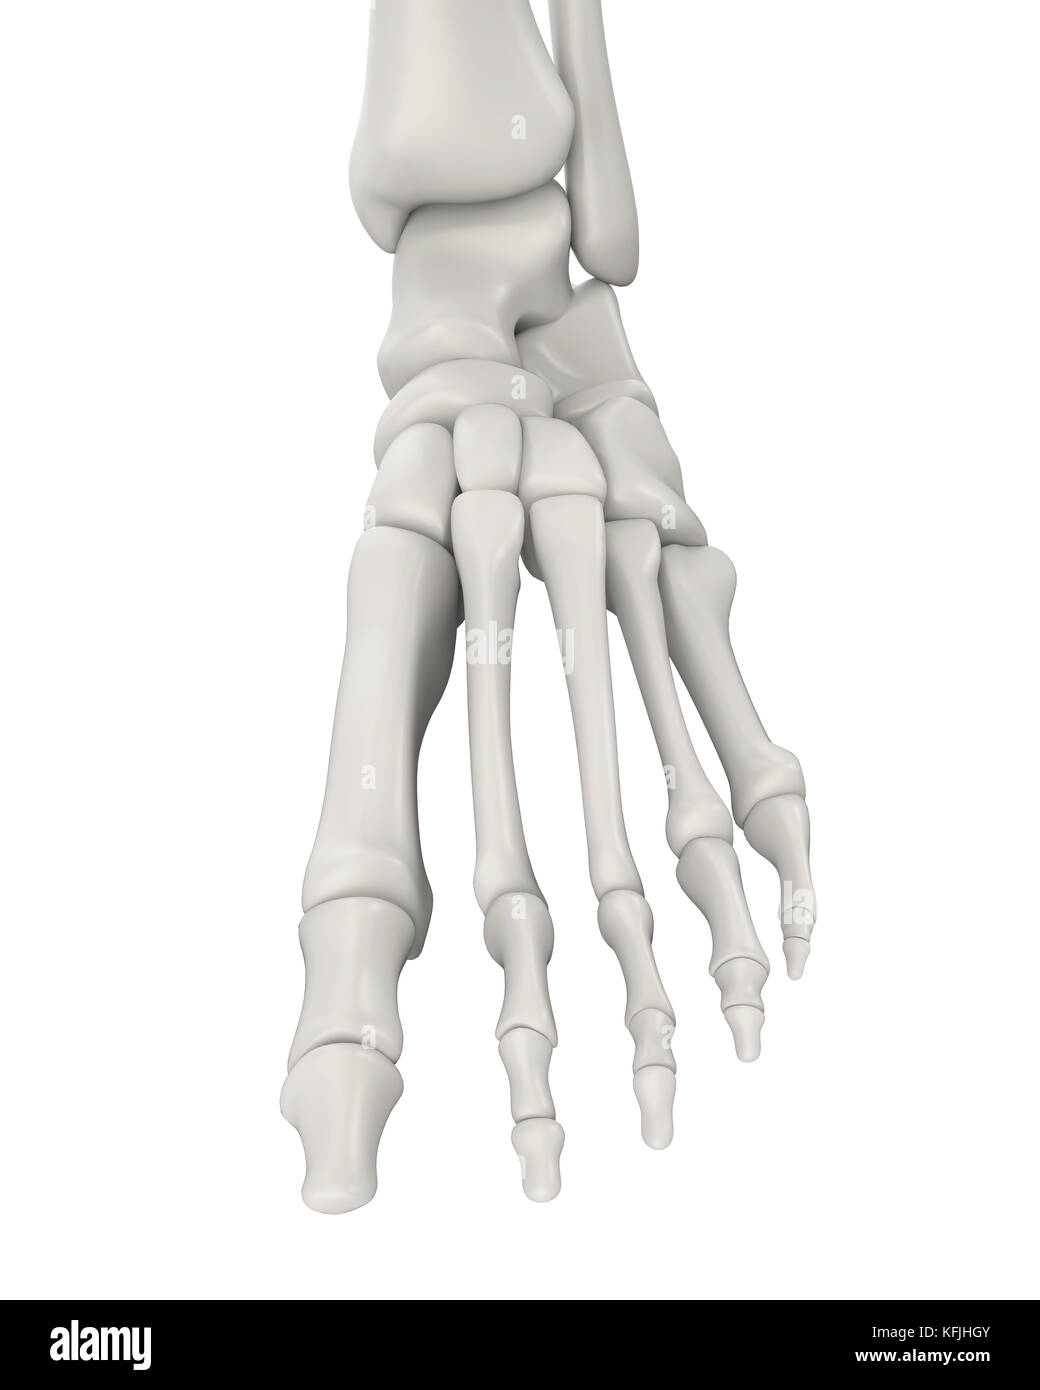 Foot Bones Anatomy Isolated Stock Photo: 164522091 - Alamy